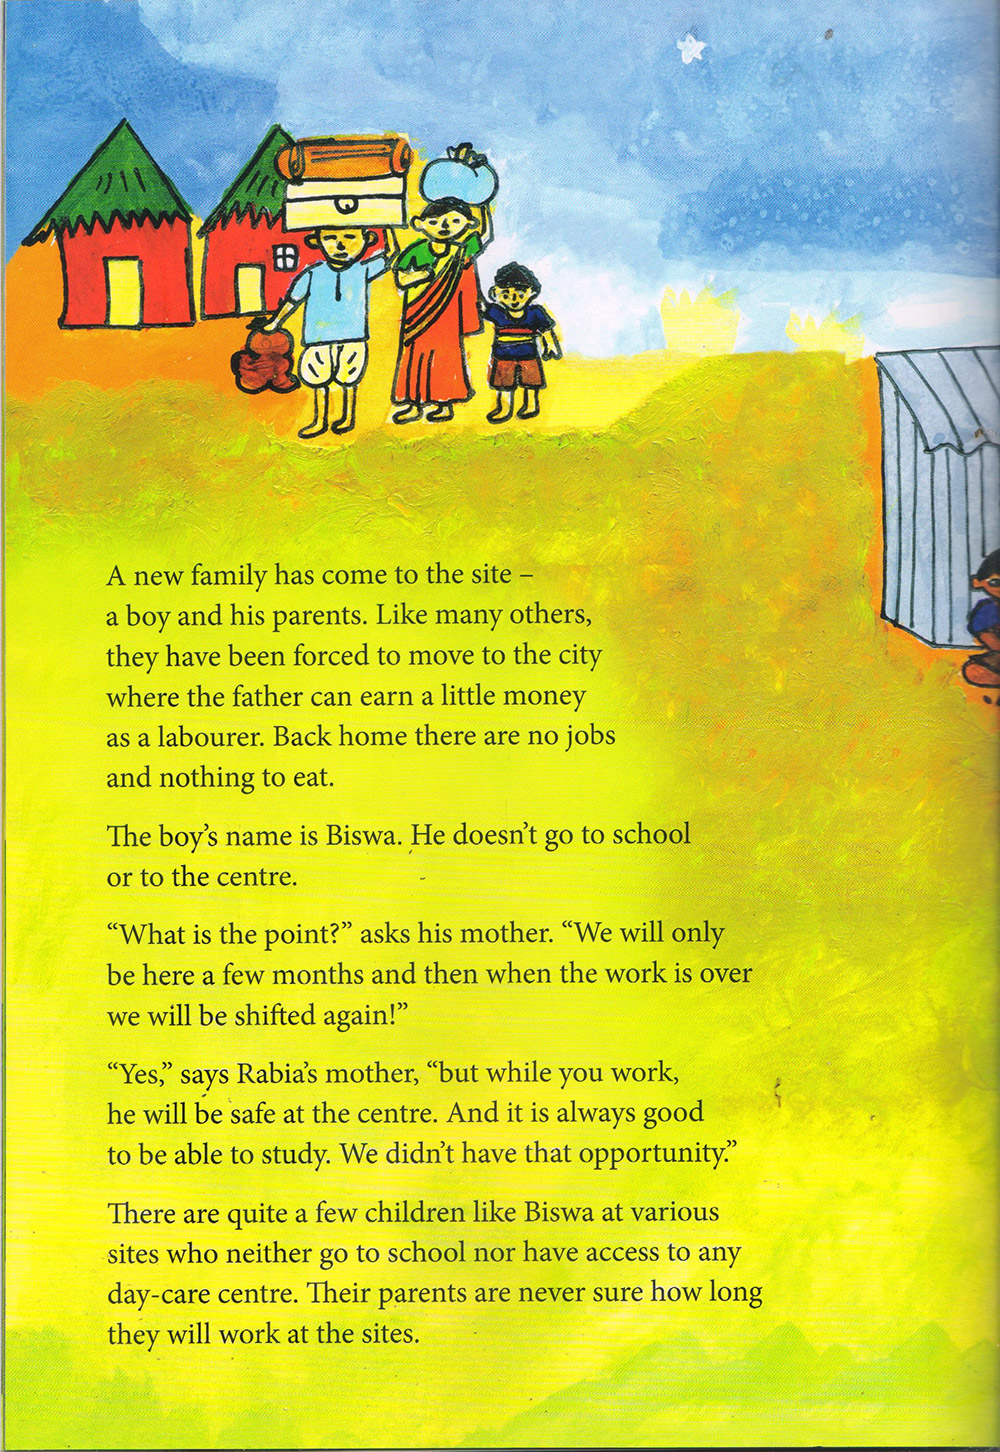 a picture book for children on construction sites gives a peep